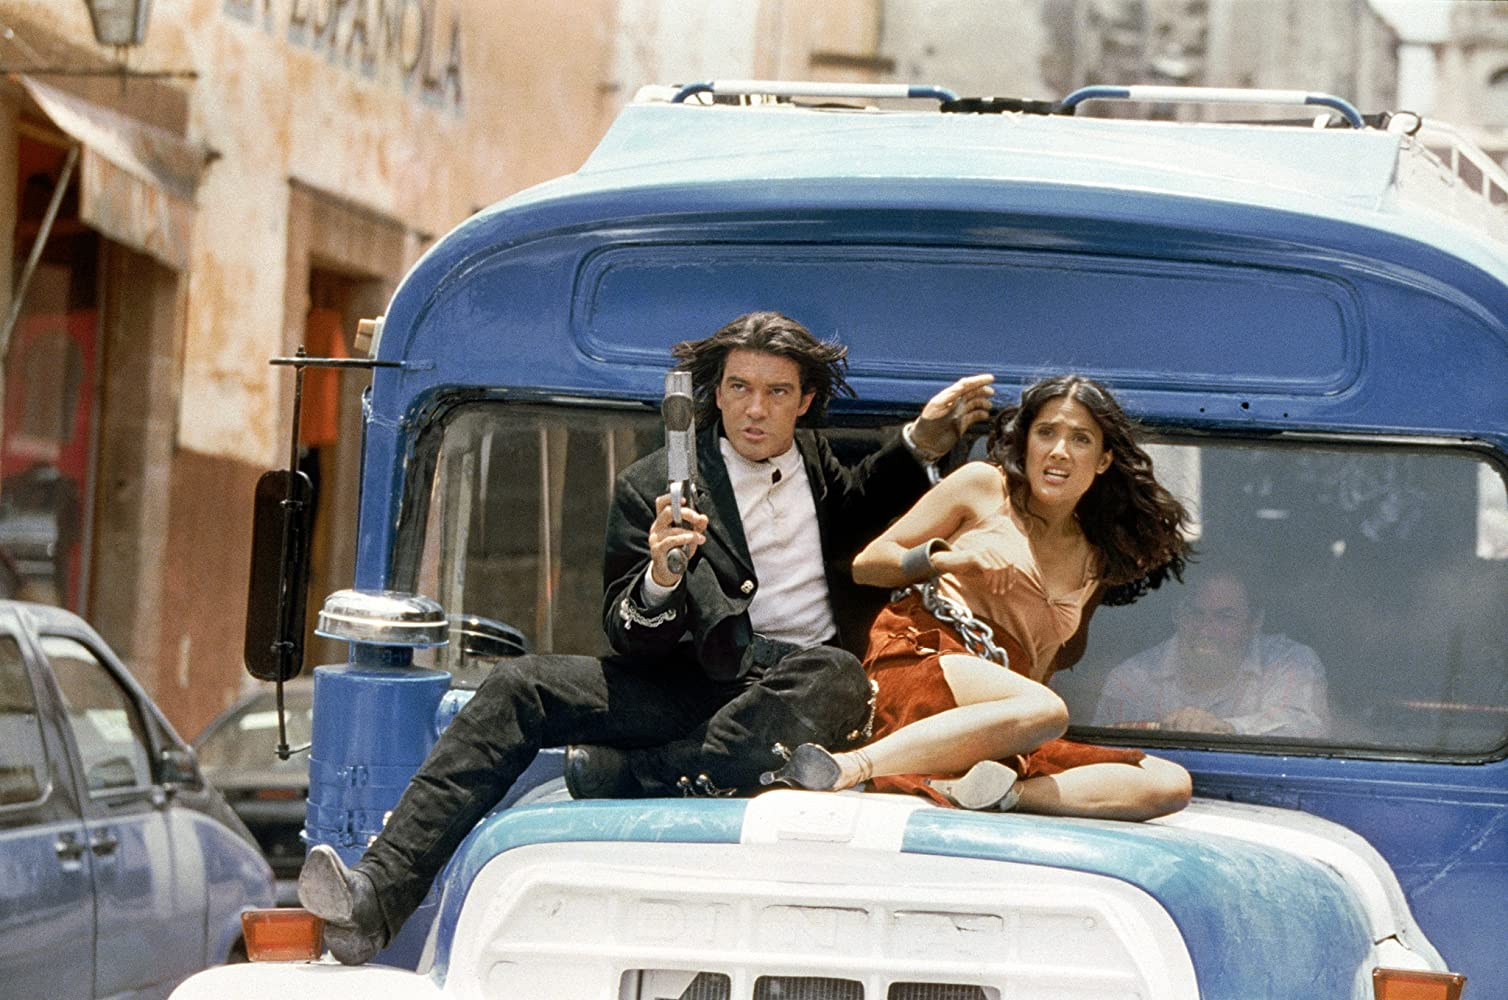 Antonio Banderas and Salma Hayek in Once Upon a Time in Mexico (2003)